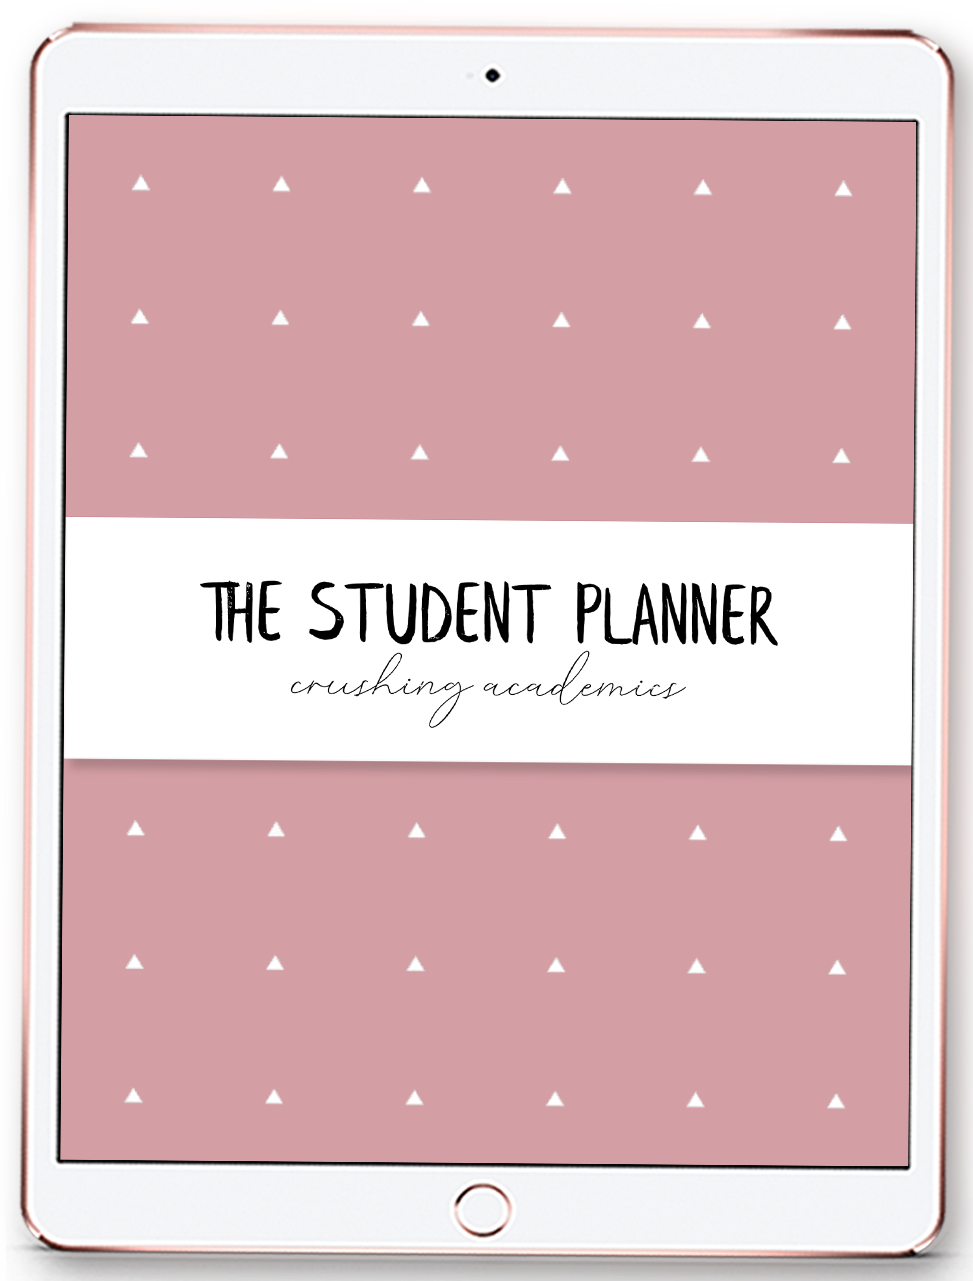 Designed For Students By Students - Stop feeling overwhelmed by organizing all aspects of your student life.